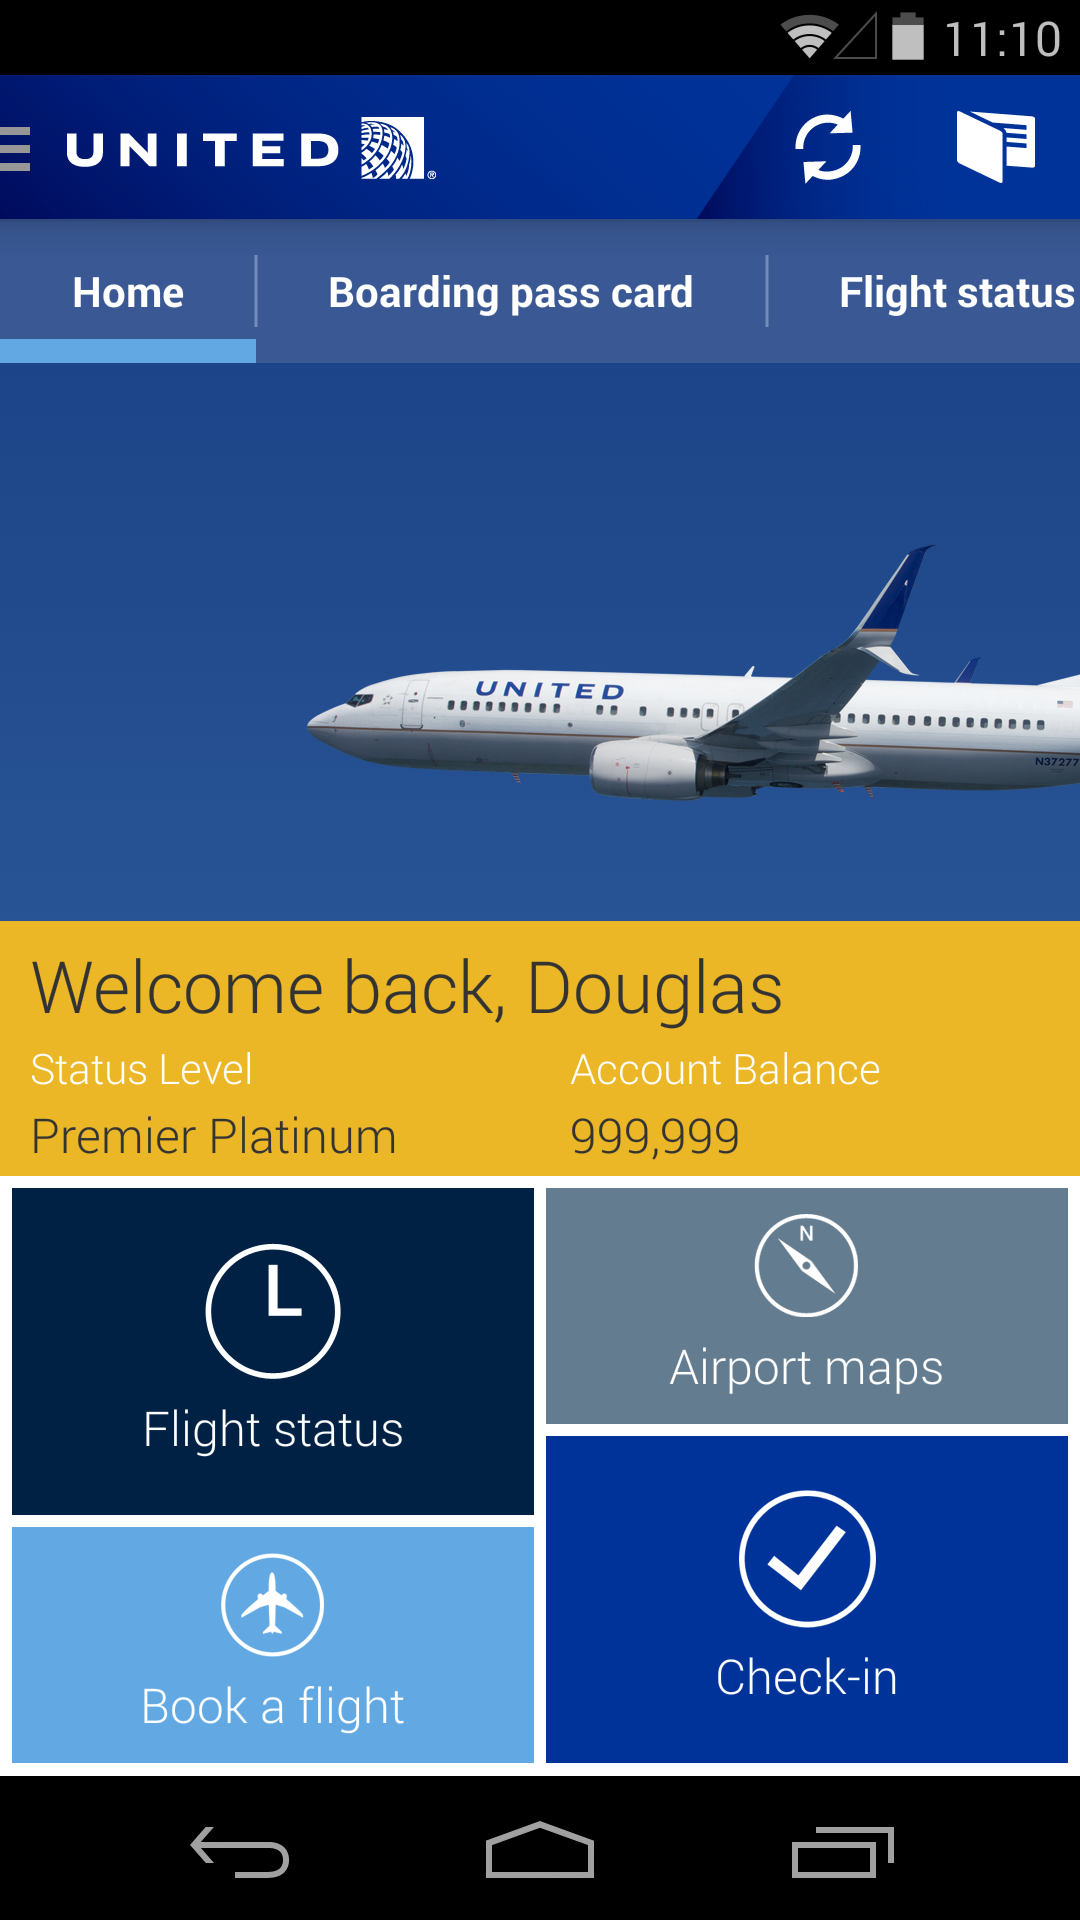 Amazon.com: United Airlines: Appstore for Android